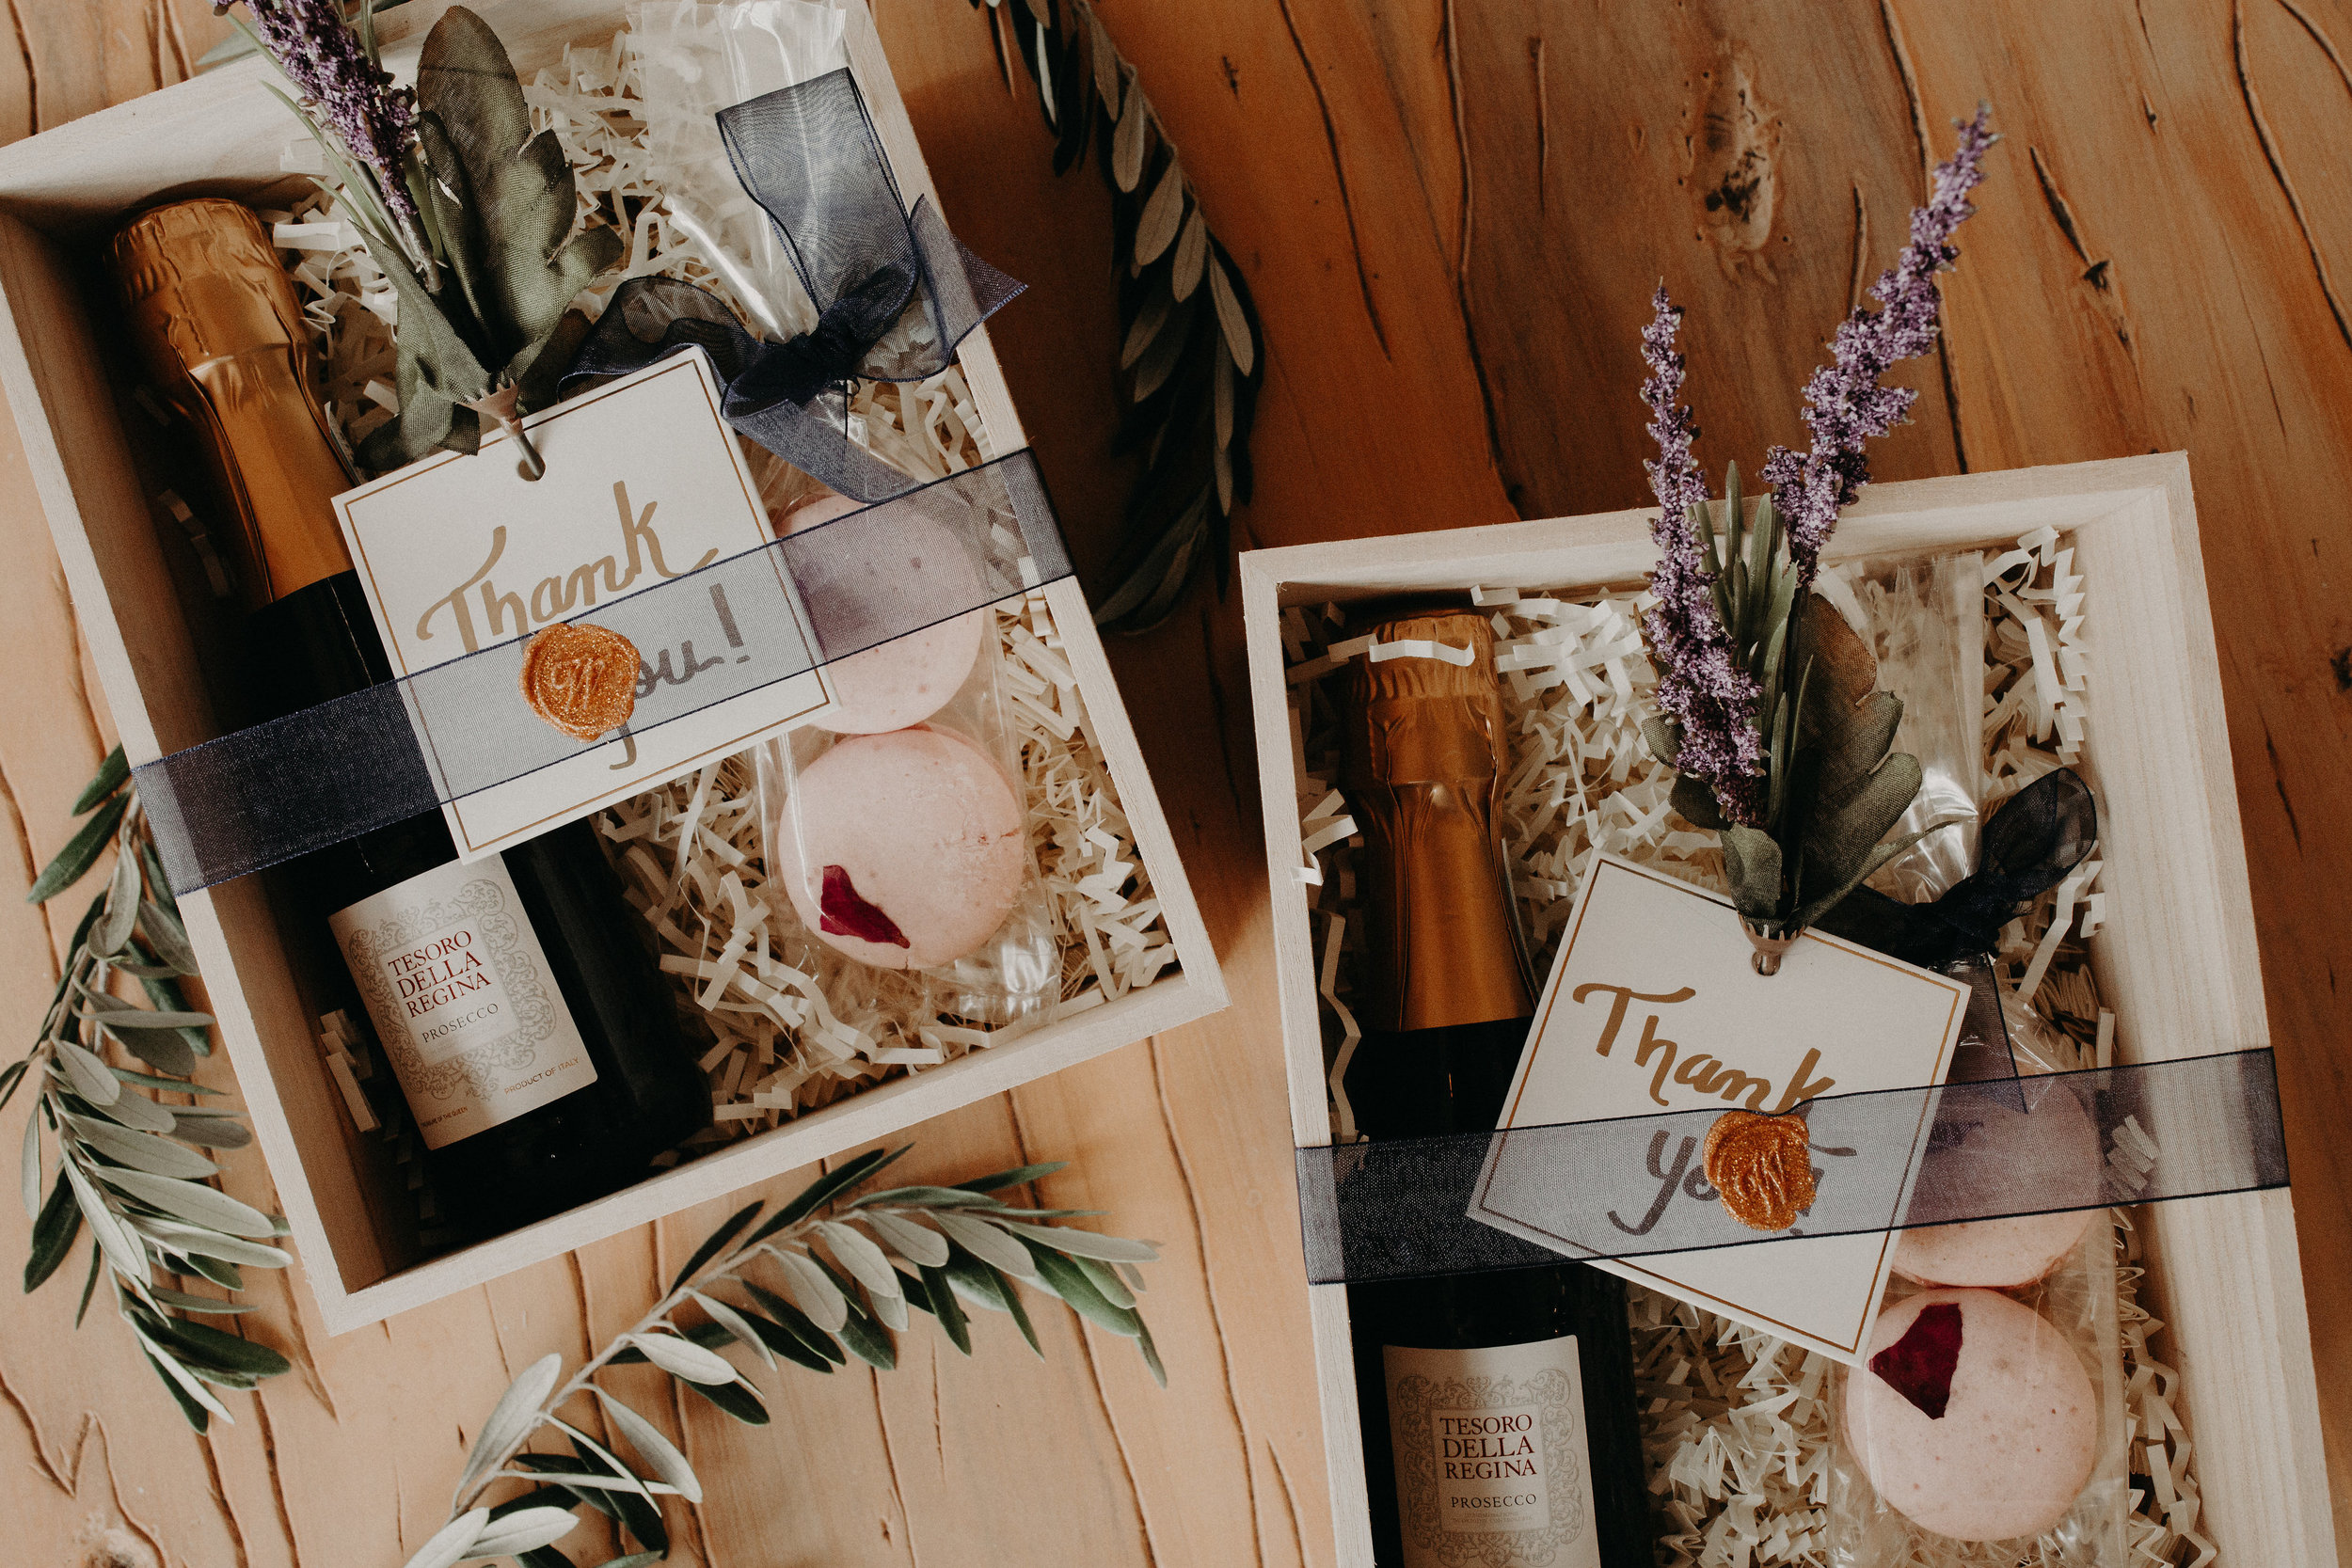 DESIGN + SCHEDULE//COMBO! - We have combined our most popular packages, Design + Decor and Month of Coordination! Not only will we make your wedding beautiful, but you also get the bonus of having Wildflower coordinate the logistics of the day! Check out Design + Decor and Month of Coordination packages to get more details!